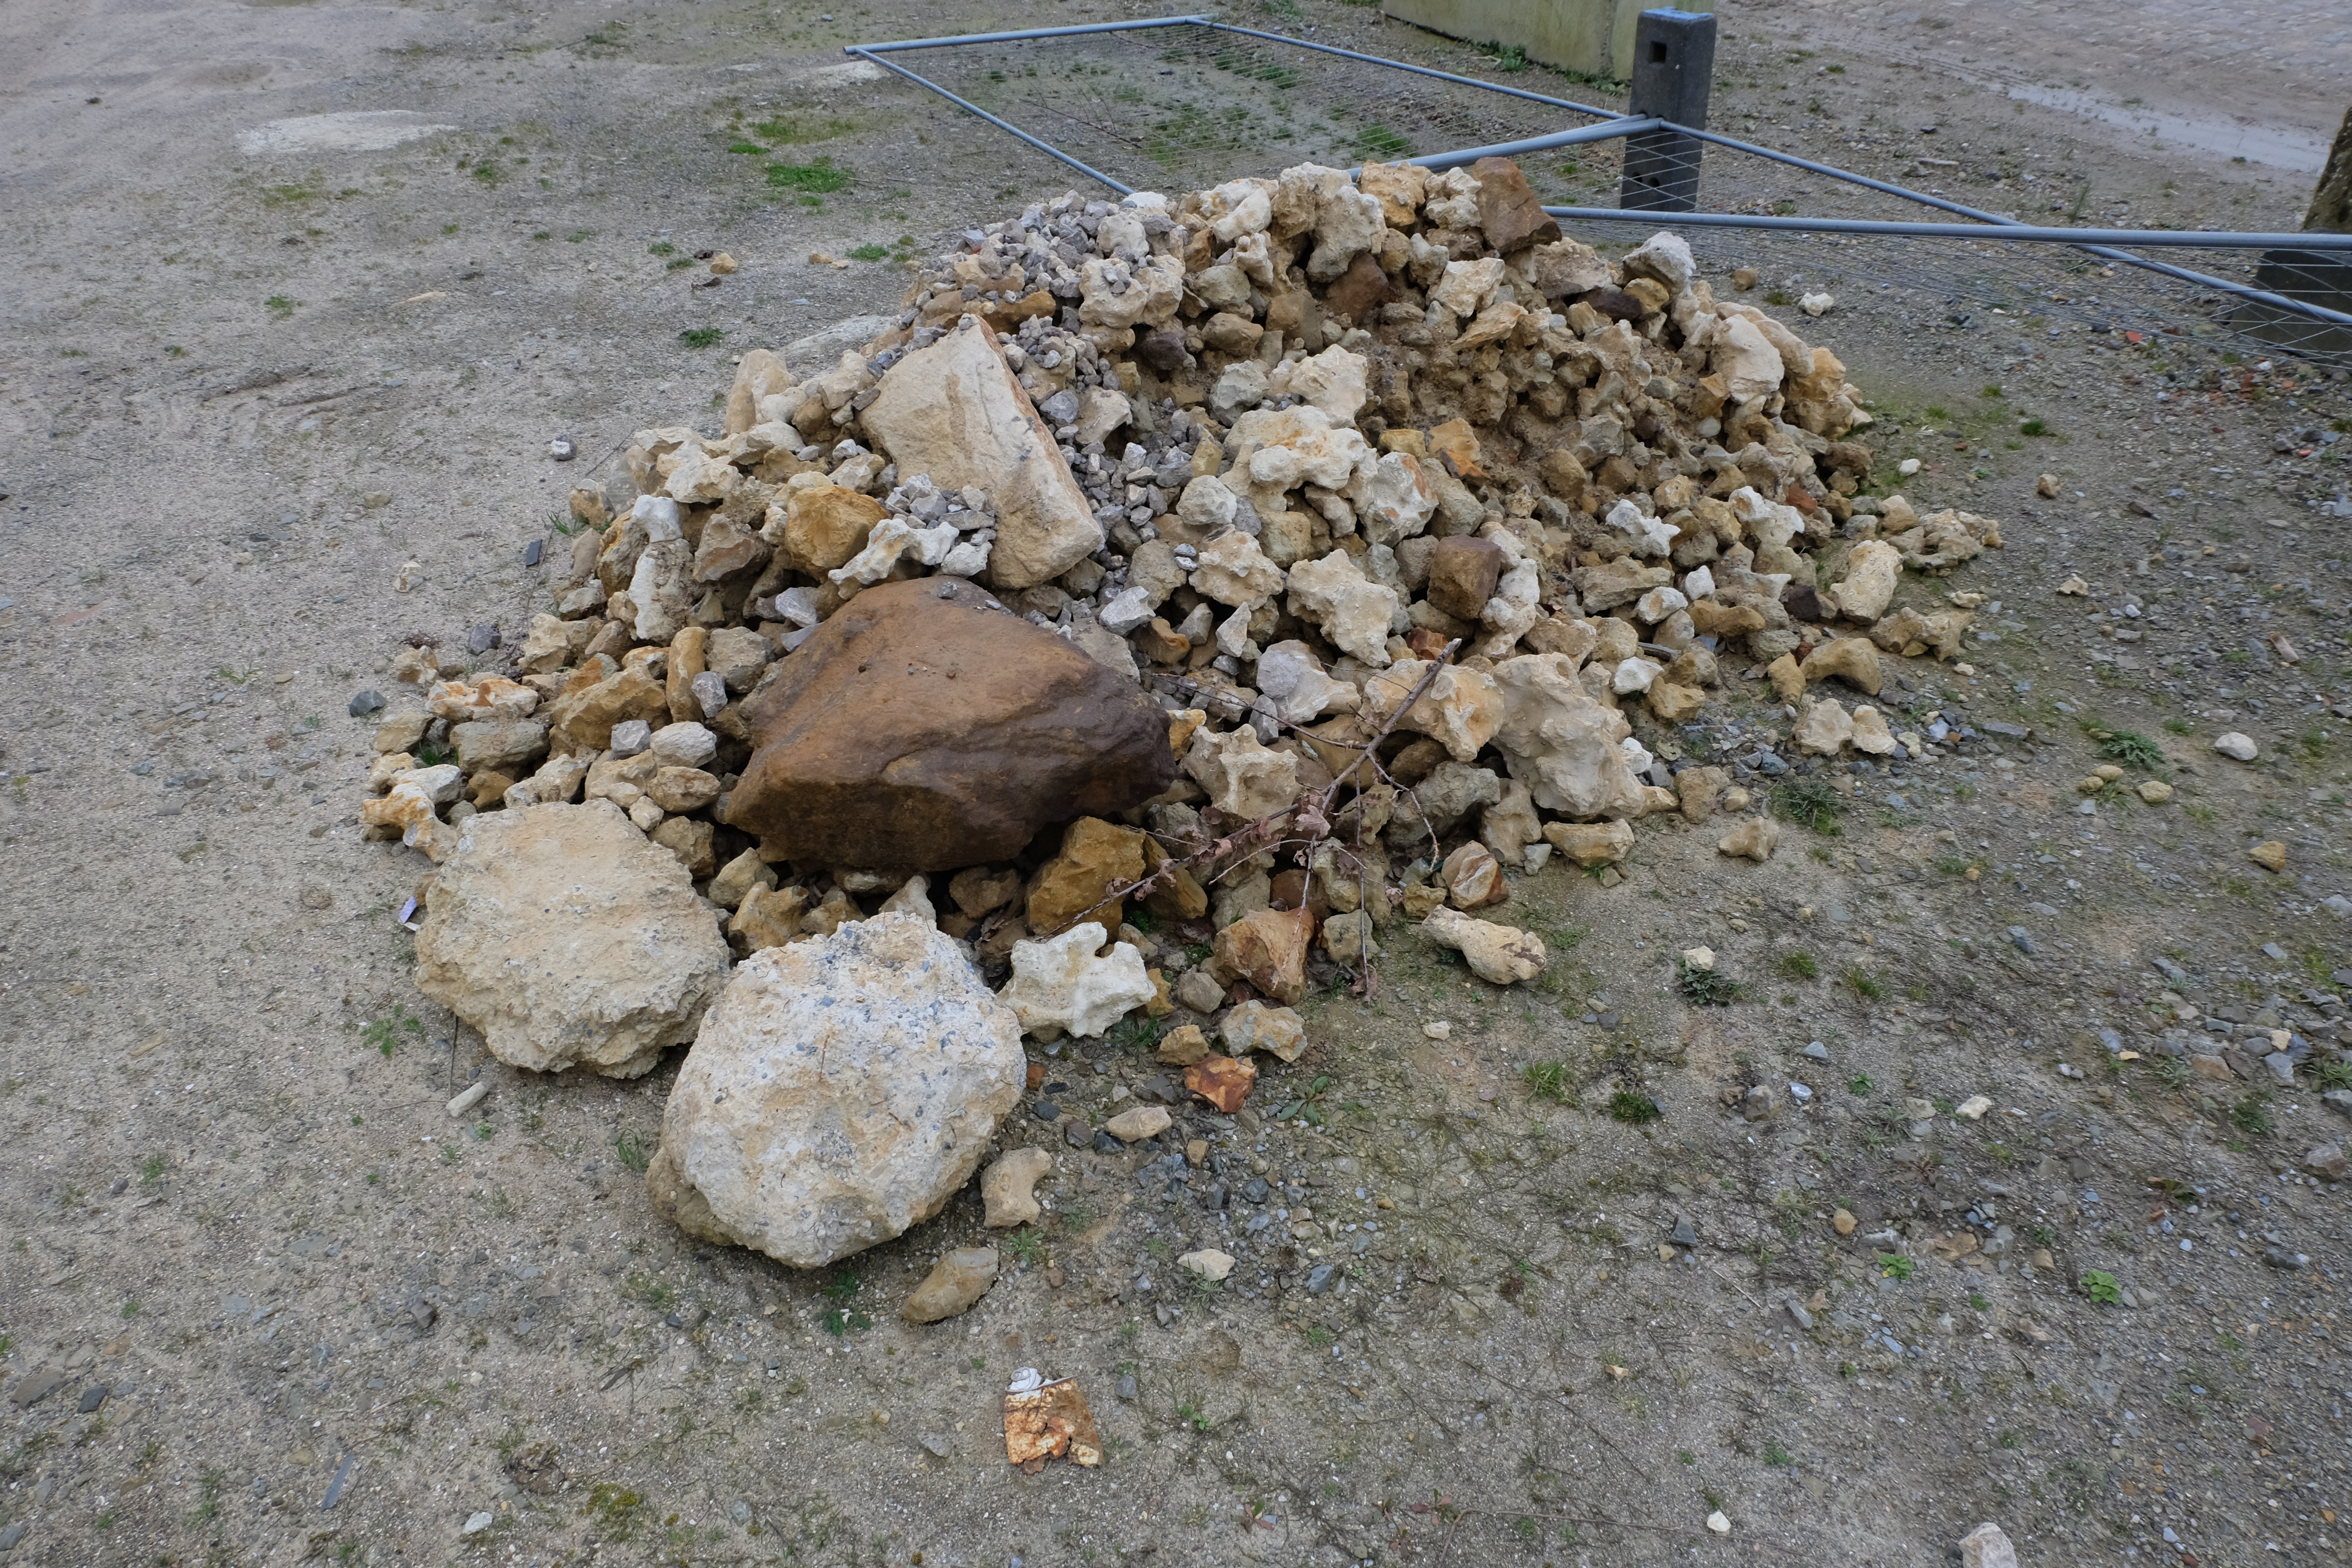 Pile of stone and rock preview image 2